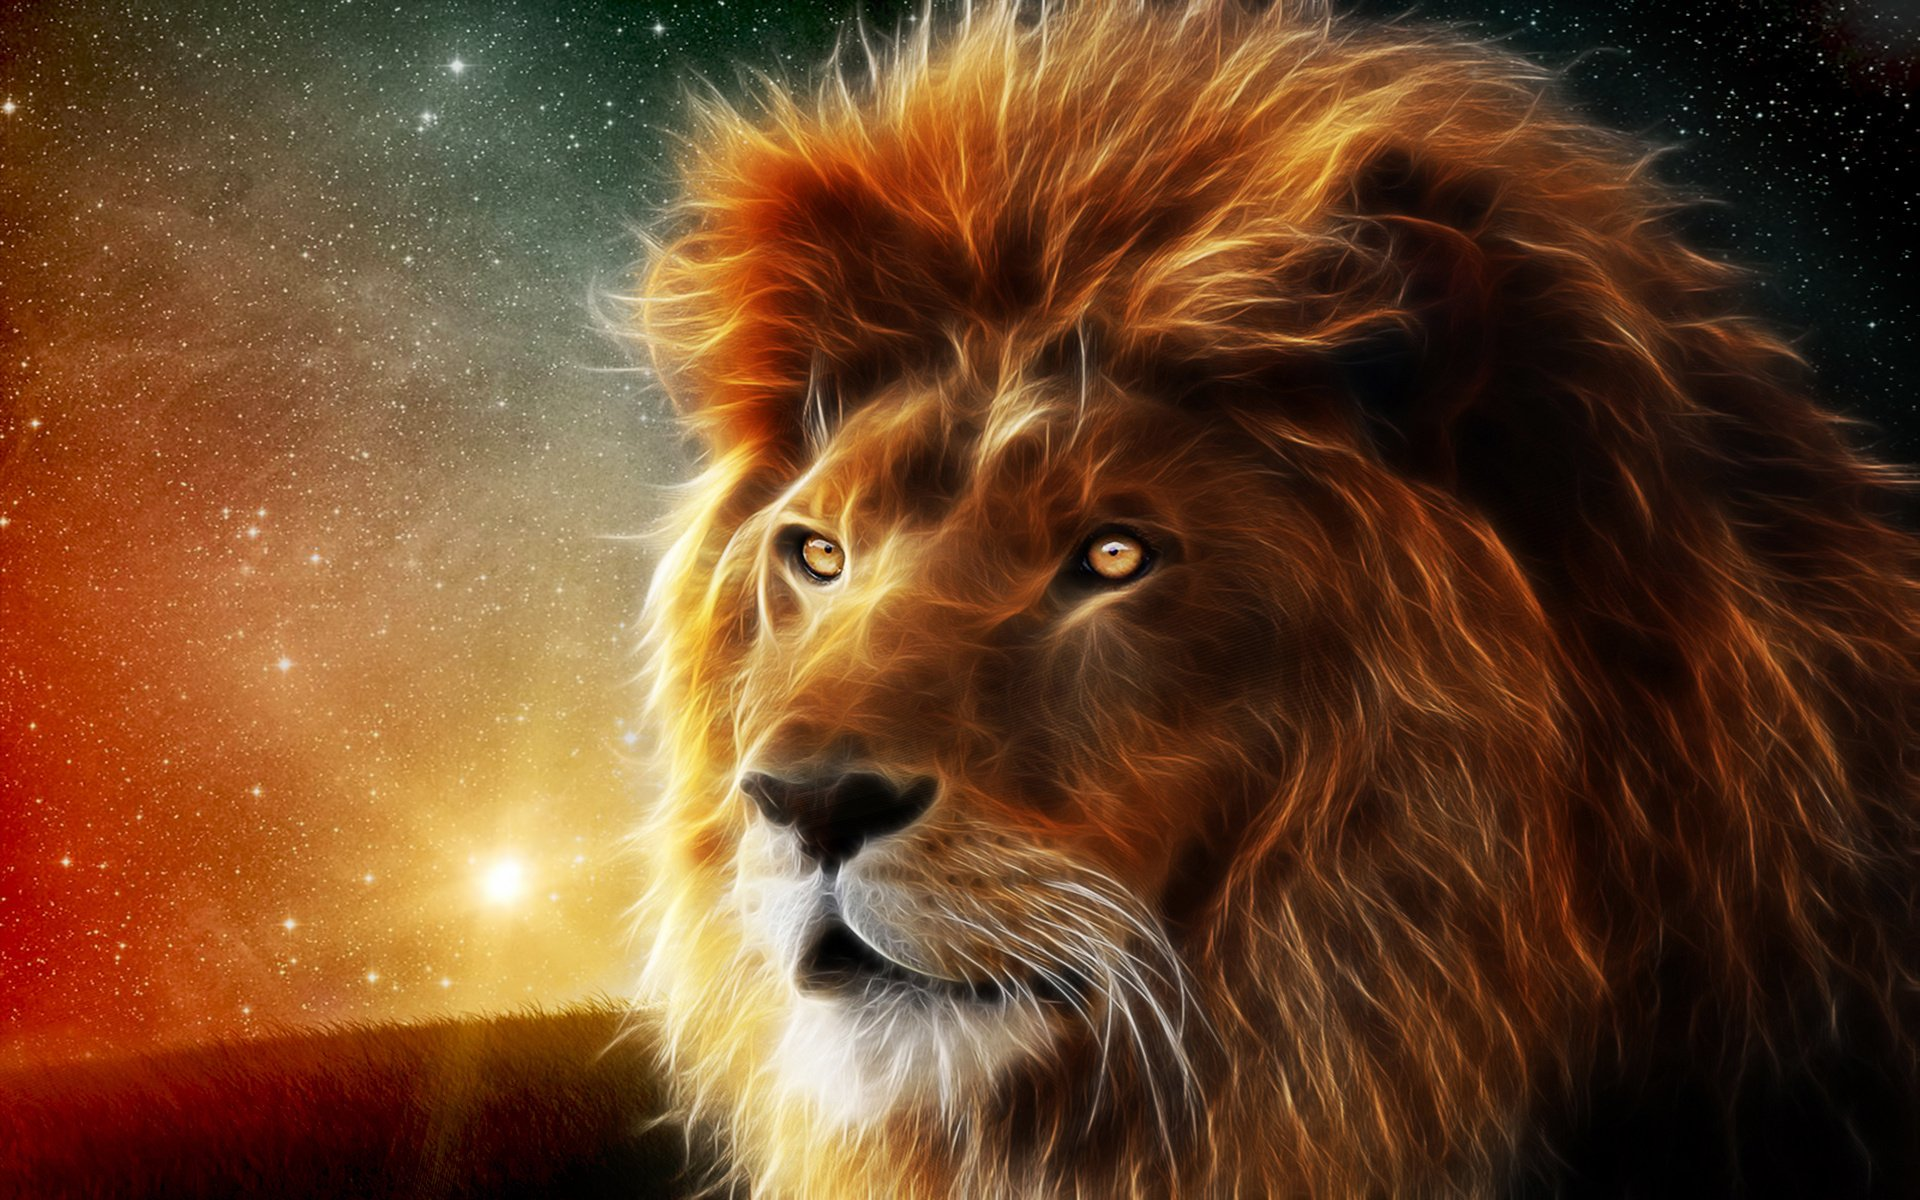 Hd wallpaper background id 372048 1920x1200 animal lion